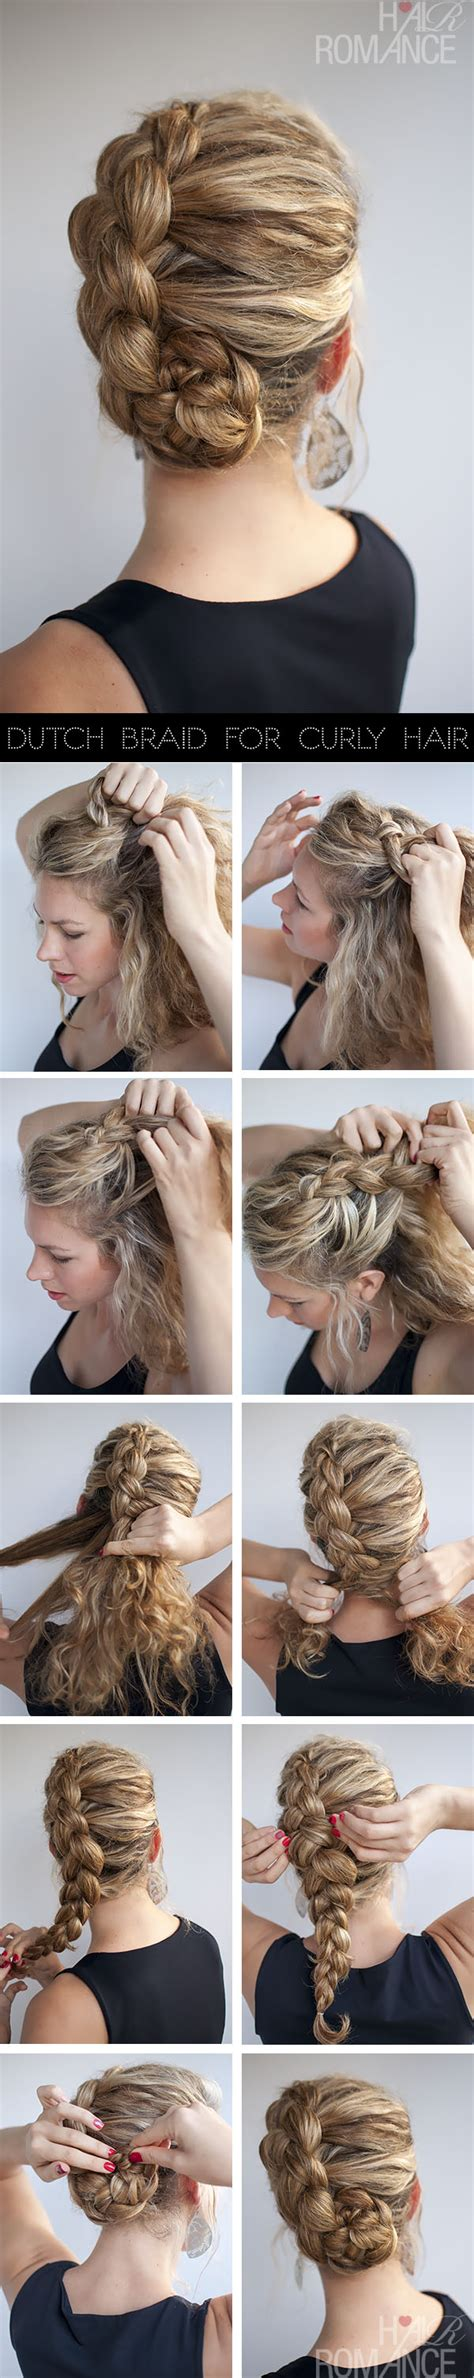 curling hair tutorial for med hair hairstyle for curly hair dutch braid tutorial hair romance